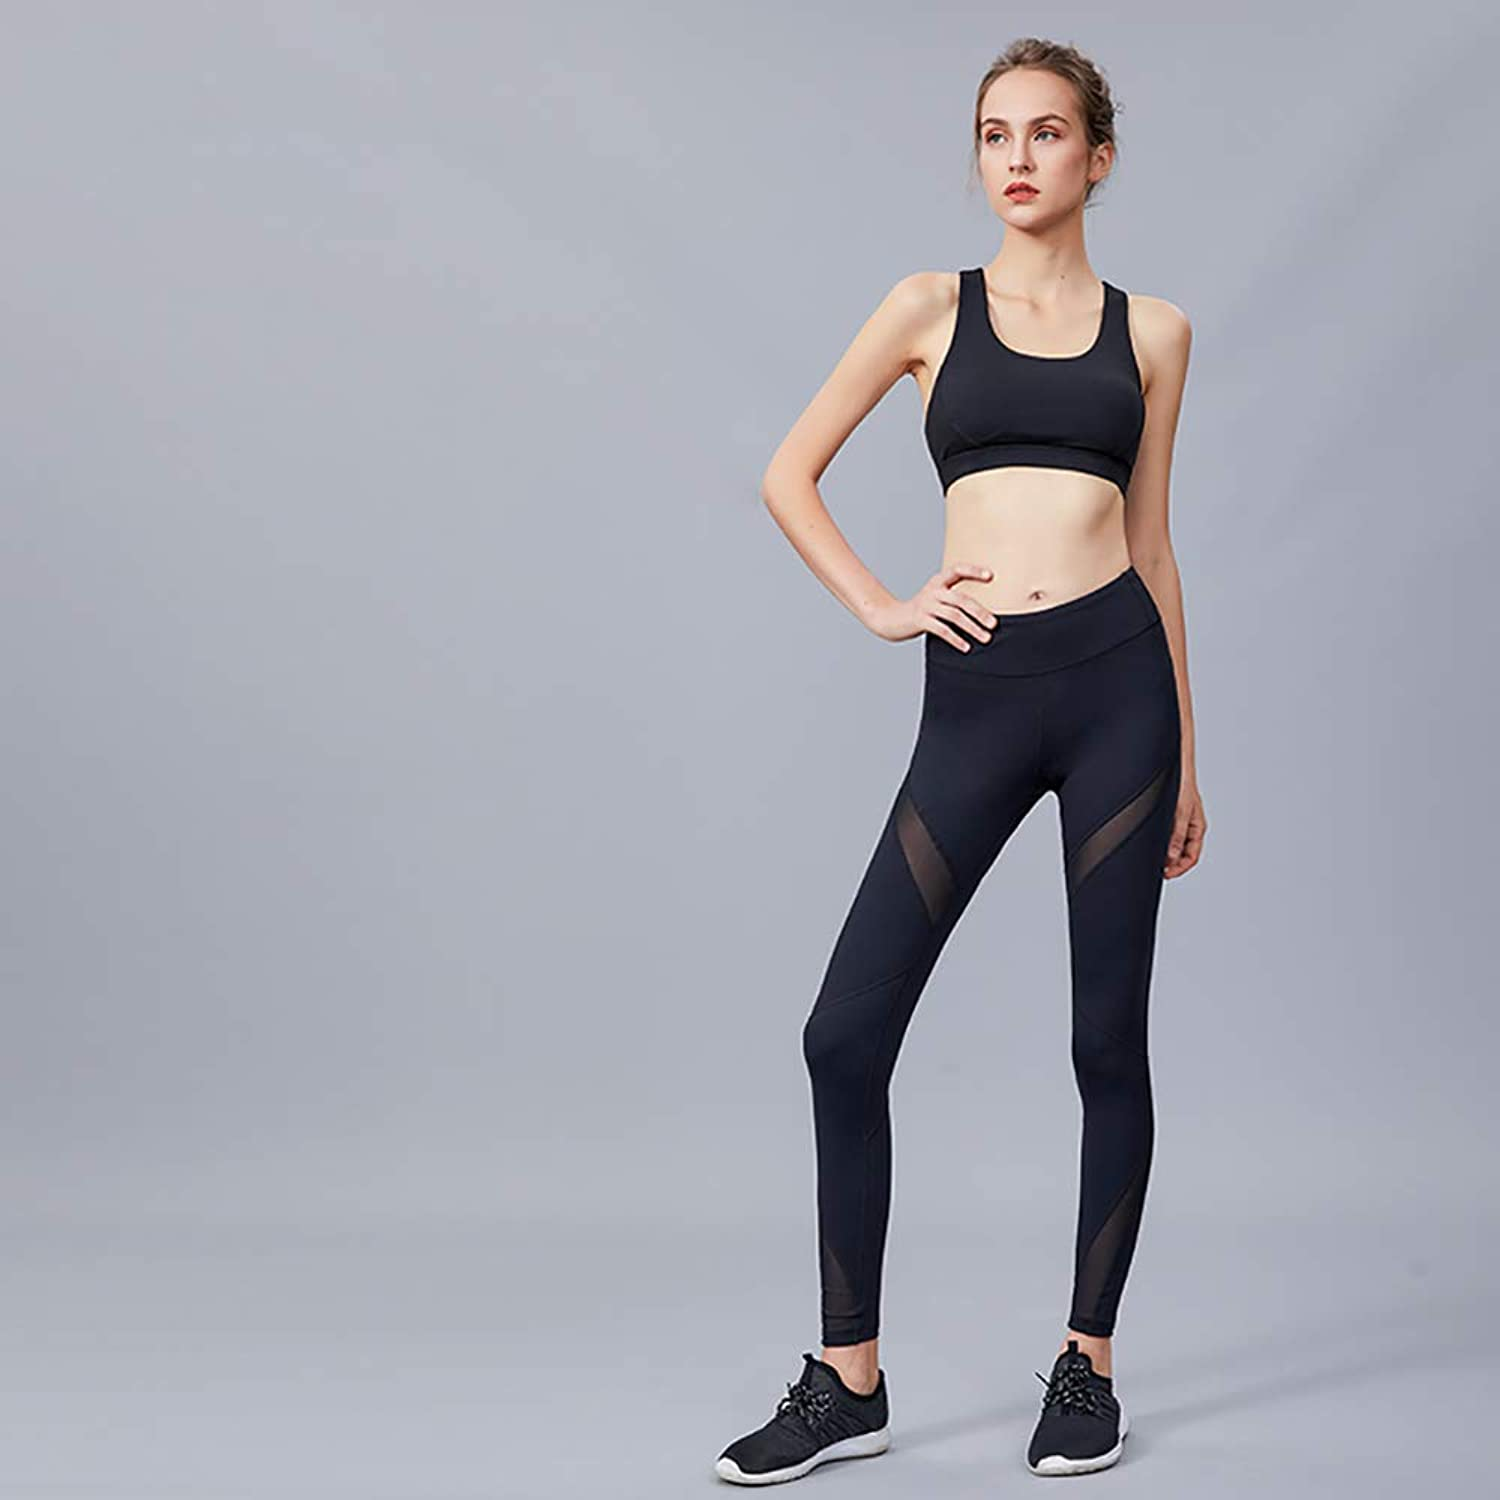 Yoga Clothing Suit Sports Suit Running Body Sports Fitness Slim Yoga Set Tight Body Quick-Drying Fitness Clothes Sports Bra Female